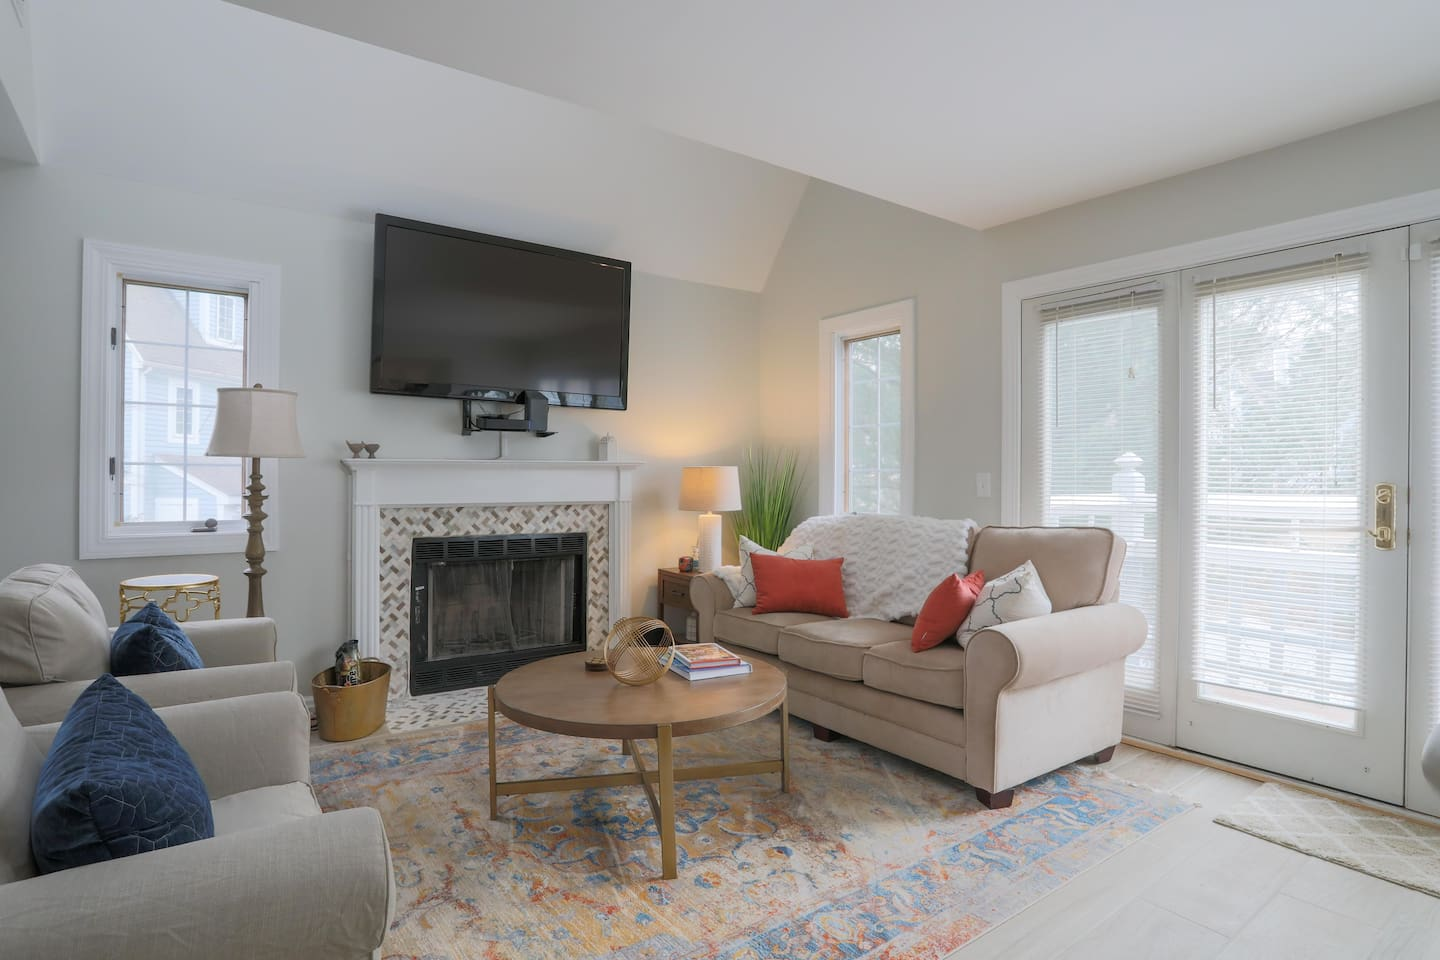 Living room area with working fireplace and large screen TV. Doors to balcony.